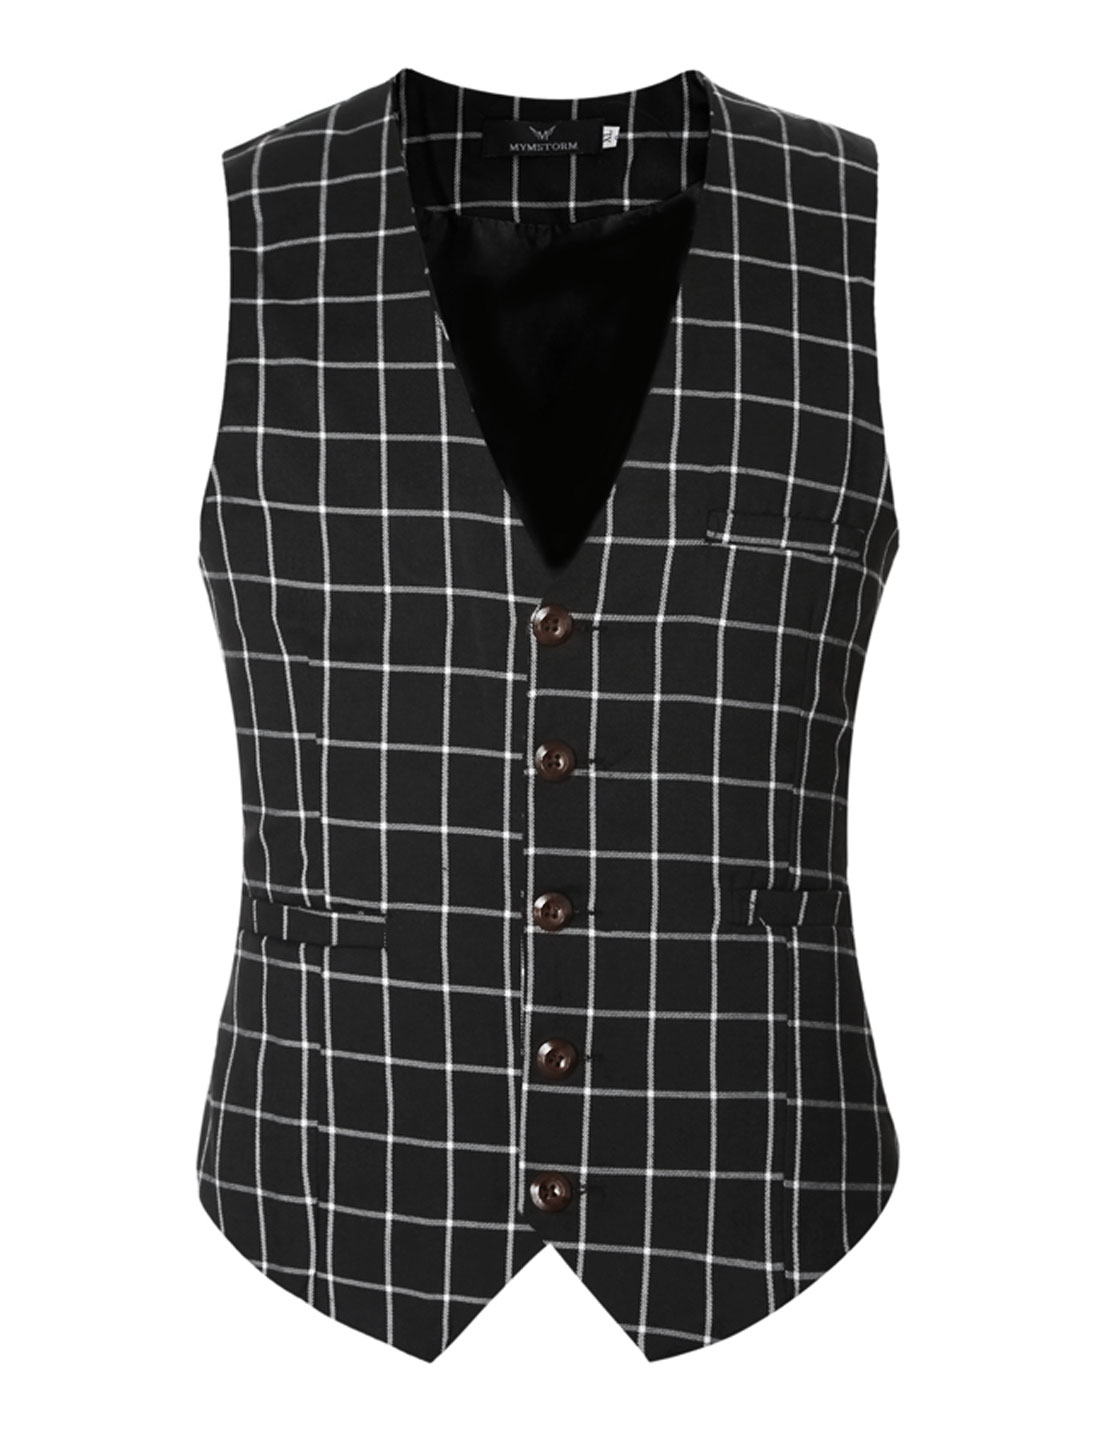 Men V Neck Checks Adjustable Buckle Back Slim Fit Vest Black S